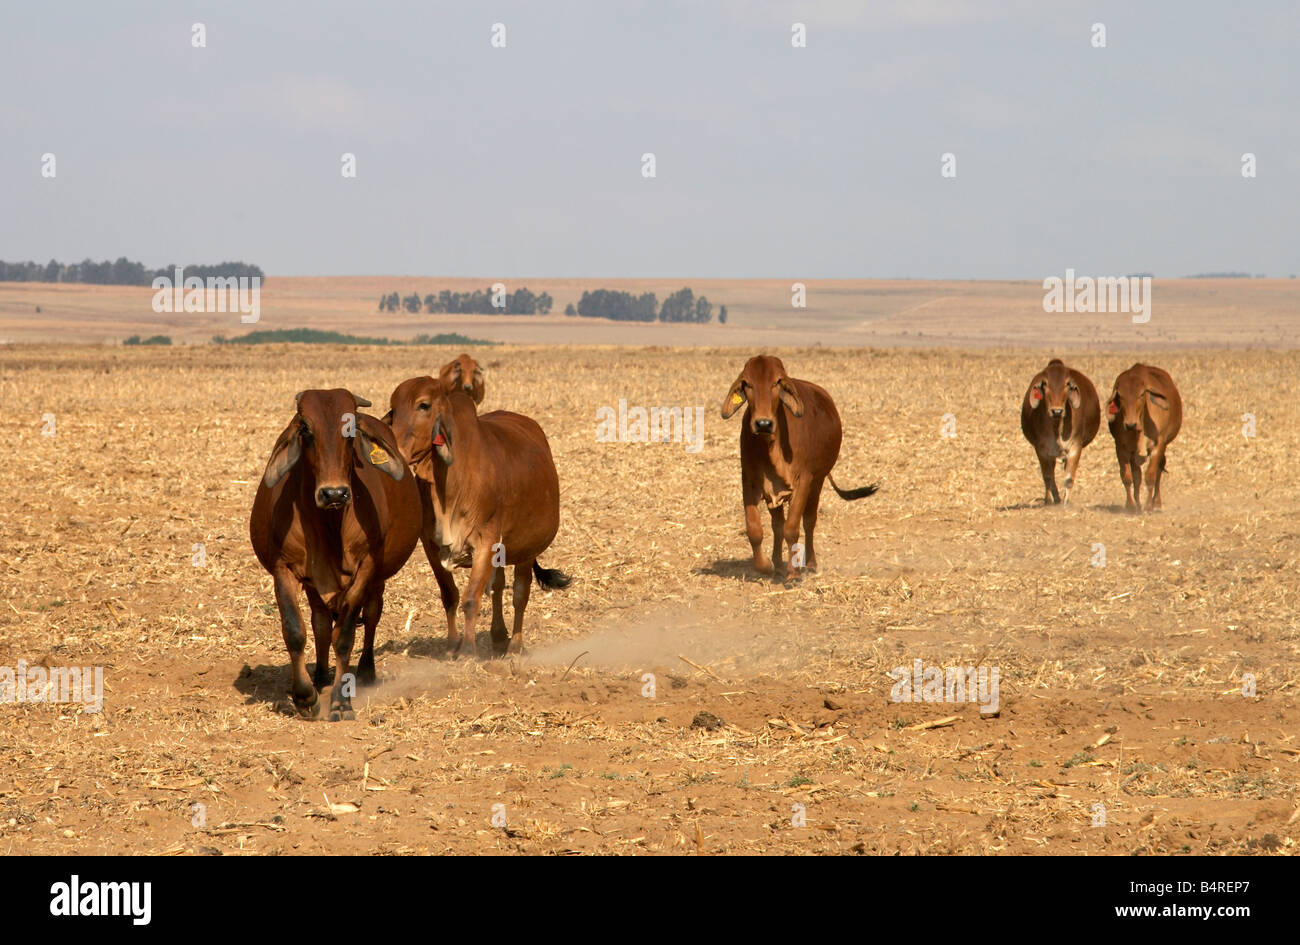 Red Brahman cattle on a farm in South Africa - Stock Image